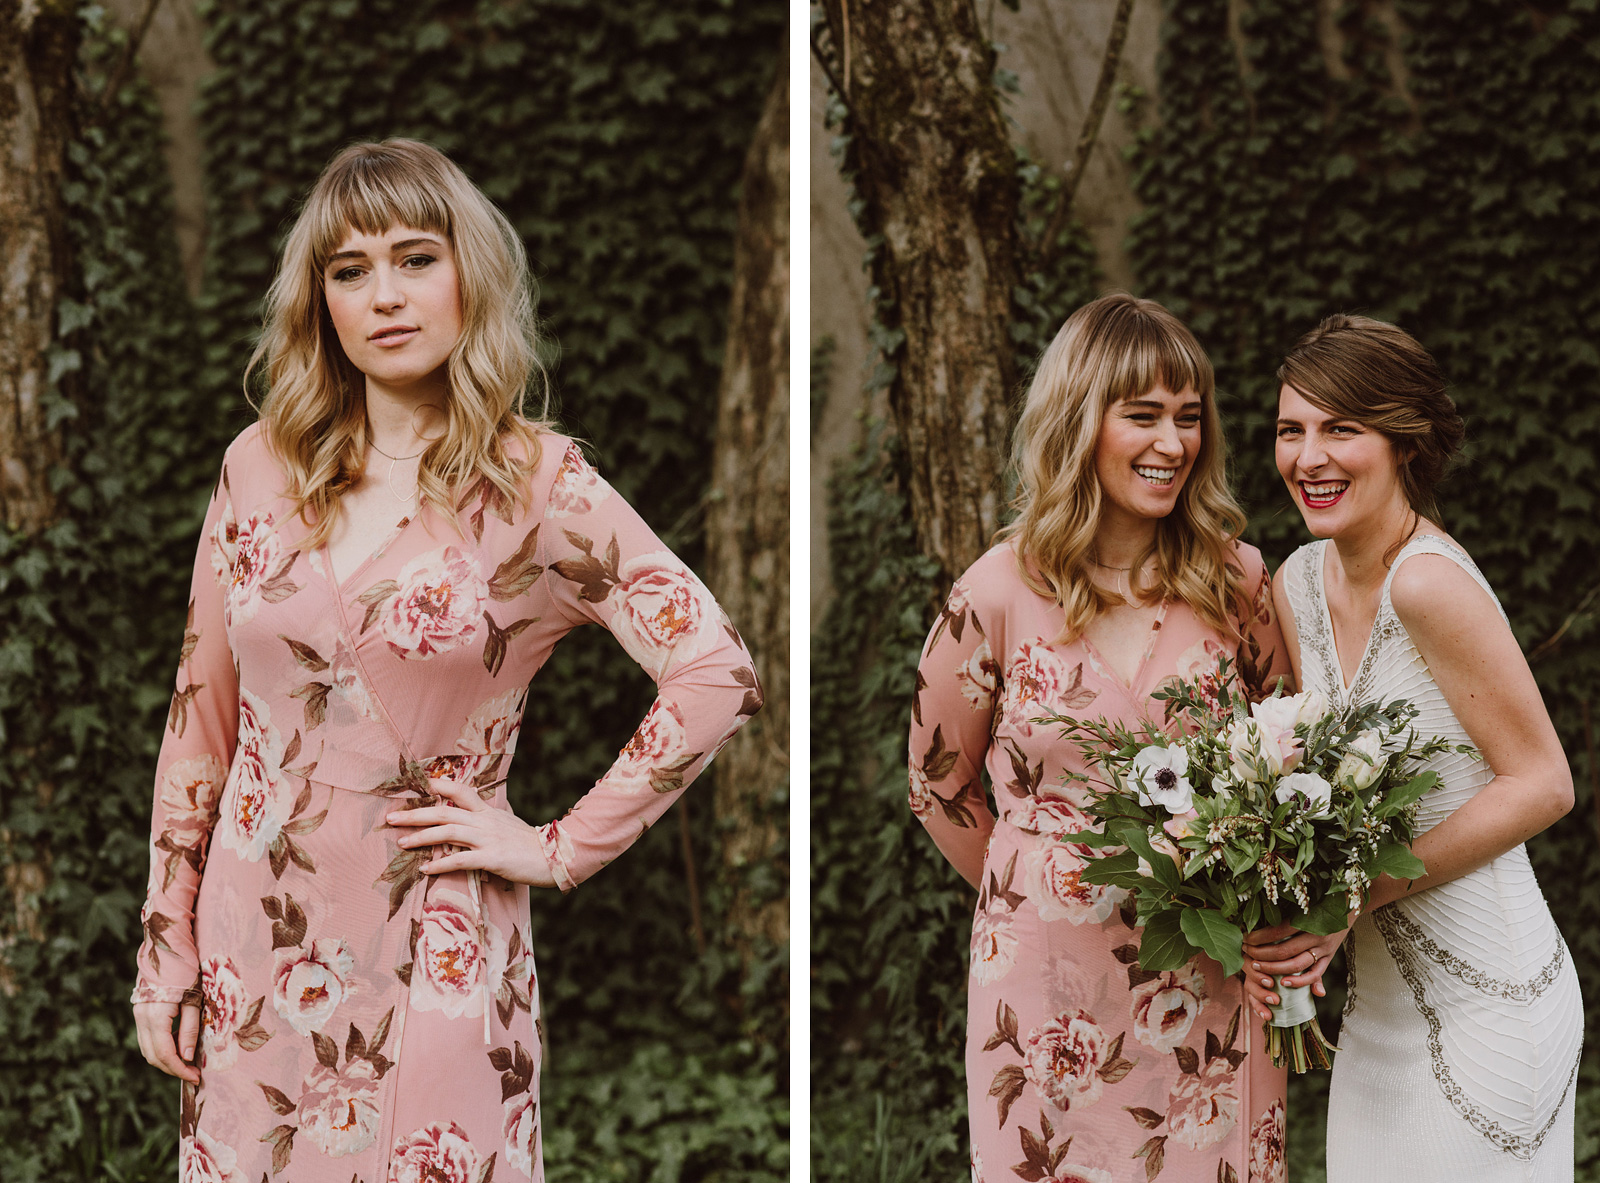 Portland Bridal Photography - Bride and bridesmaid giggling in a backyard